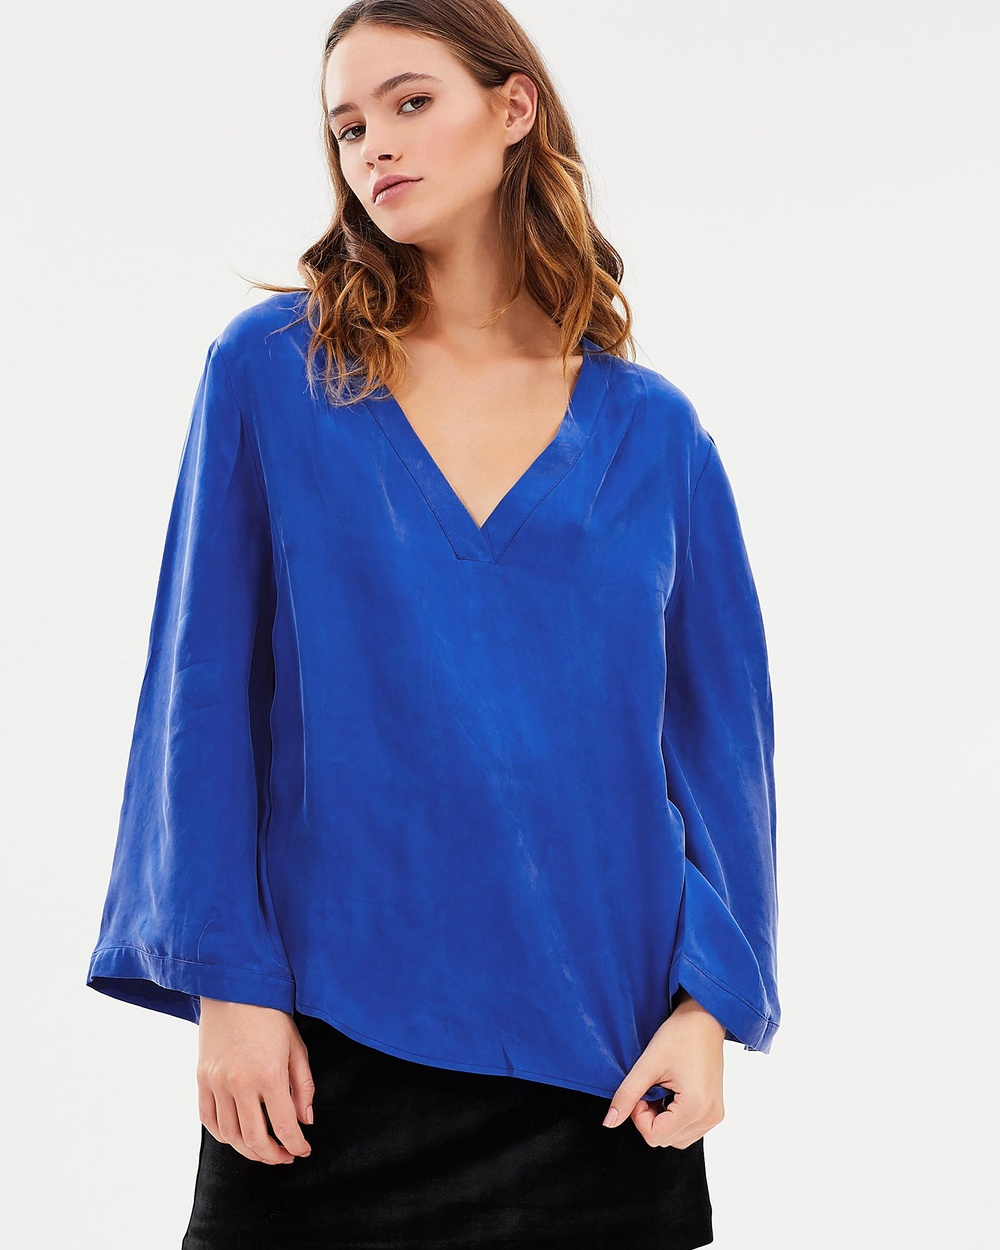 Third Form Essential Deep V Blouse Tops Azure Essential Deep V Blouse